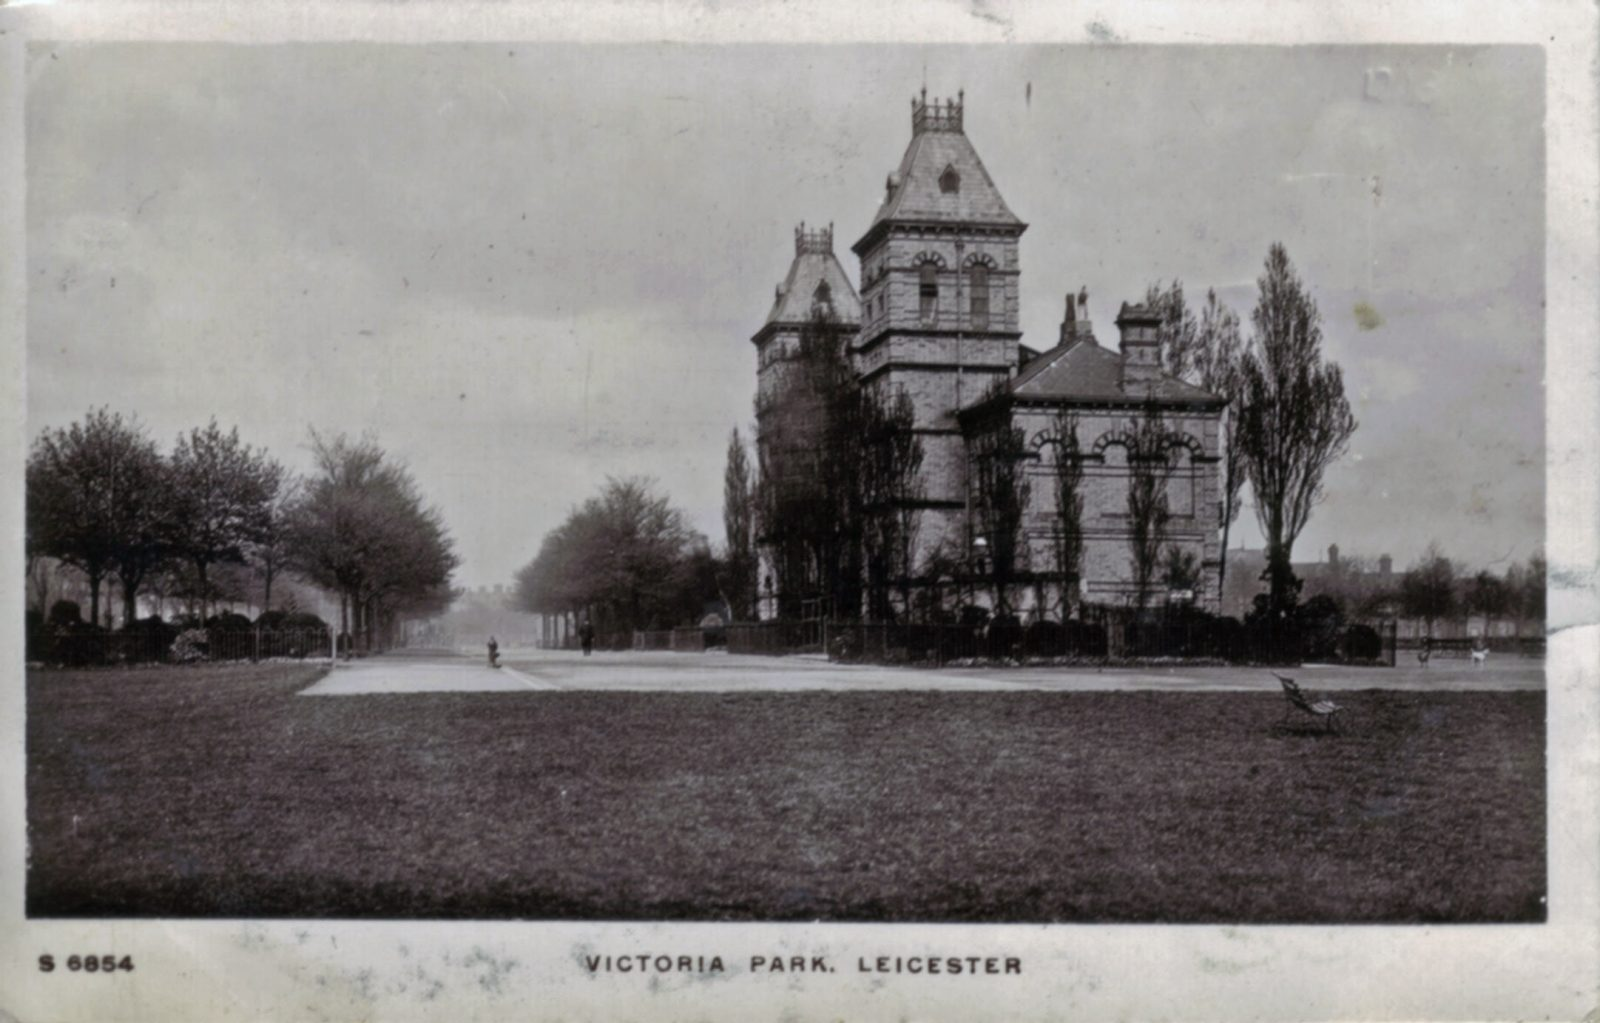 Victoria Park, Leicester. Undated: Pavilion - side view with avenue. (File:1074)